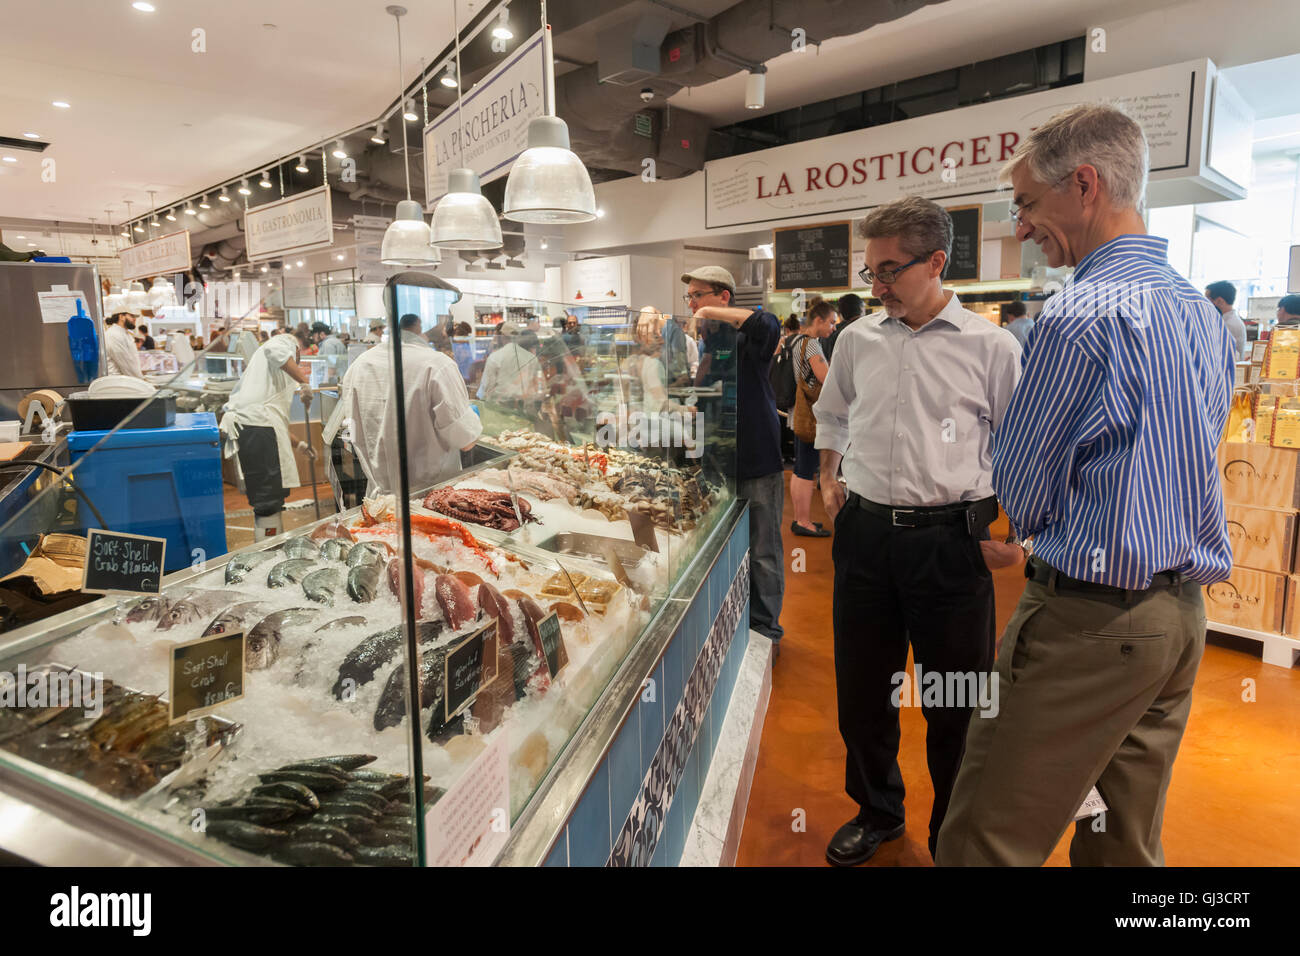 La Pescheria at the grand opening of Eataly Downtown in Lower Manhattan in New York on Thursday, August 11, 2016. - Stock Image